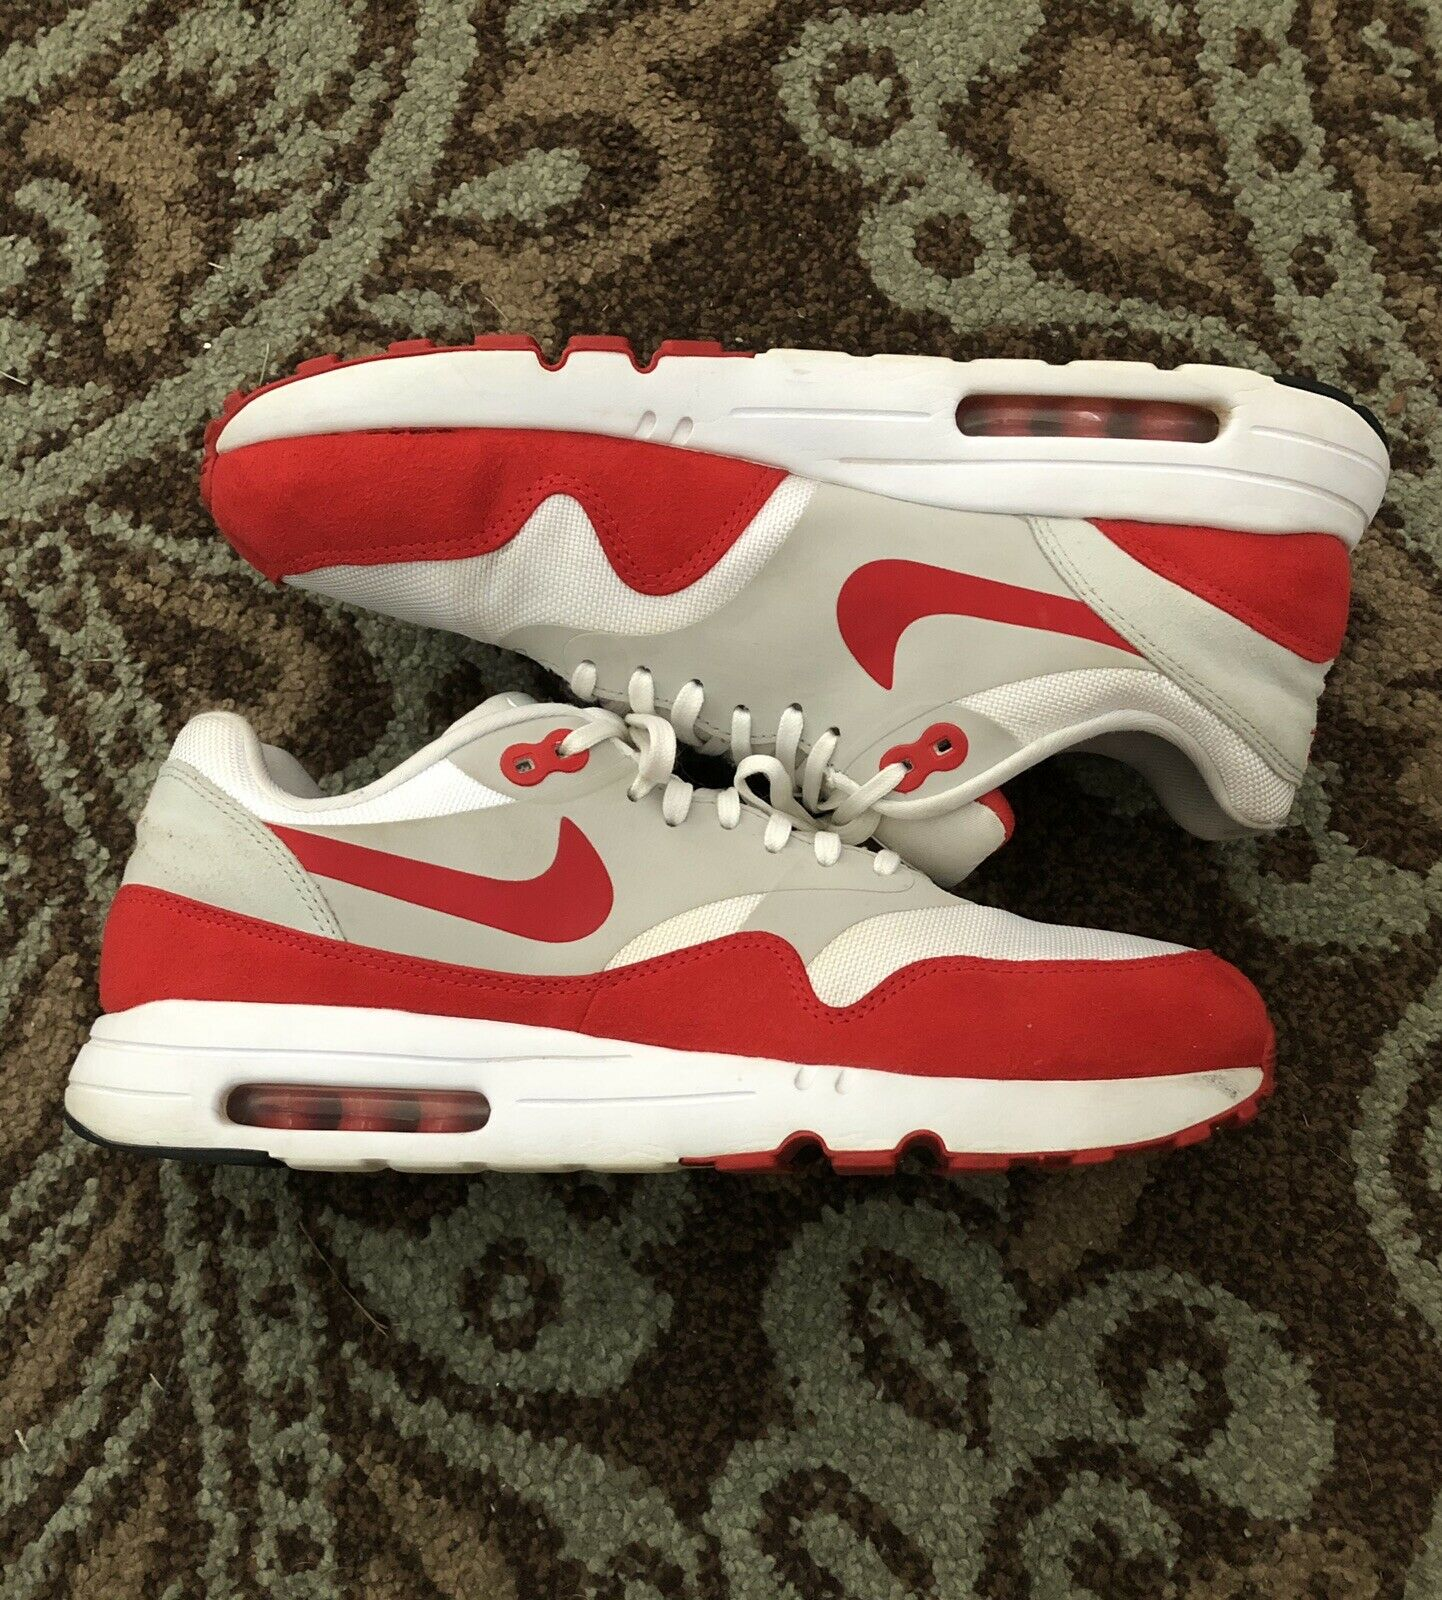 Gemidos Una vez más arrastrar  Nike Air Max Day 1 Ultra 2.0 Le 3.26 Am1 Red White Men Size 11 for sale  online | eBay